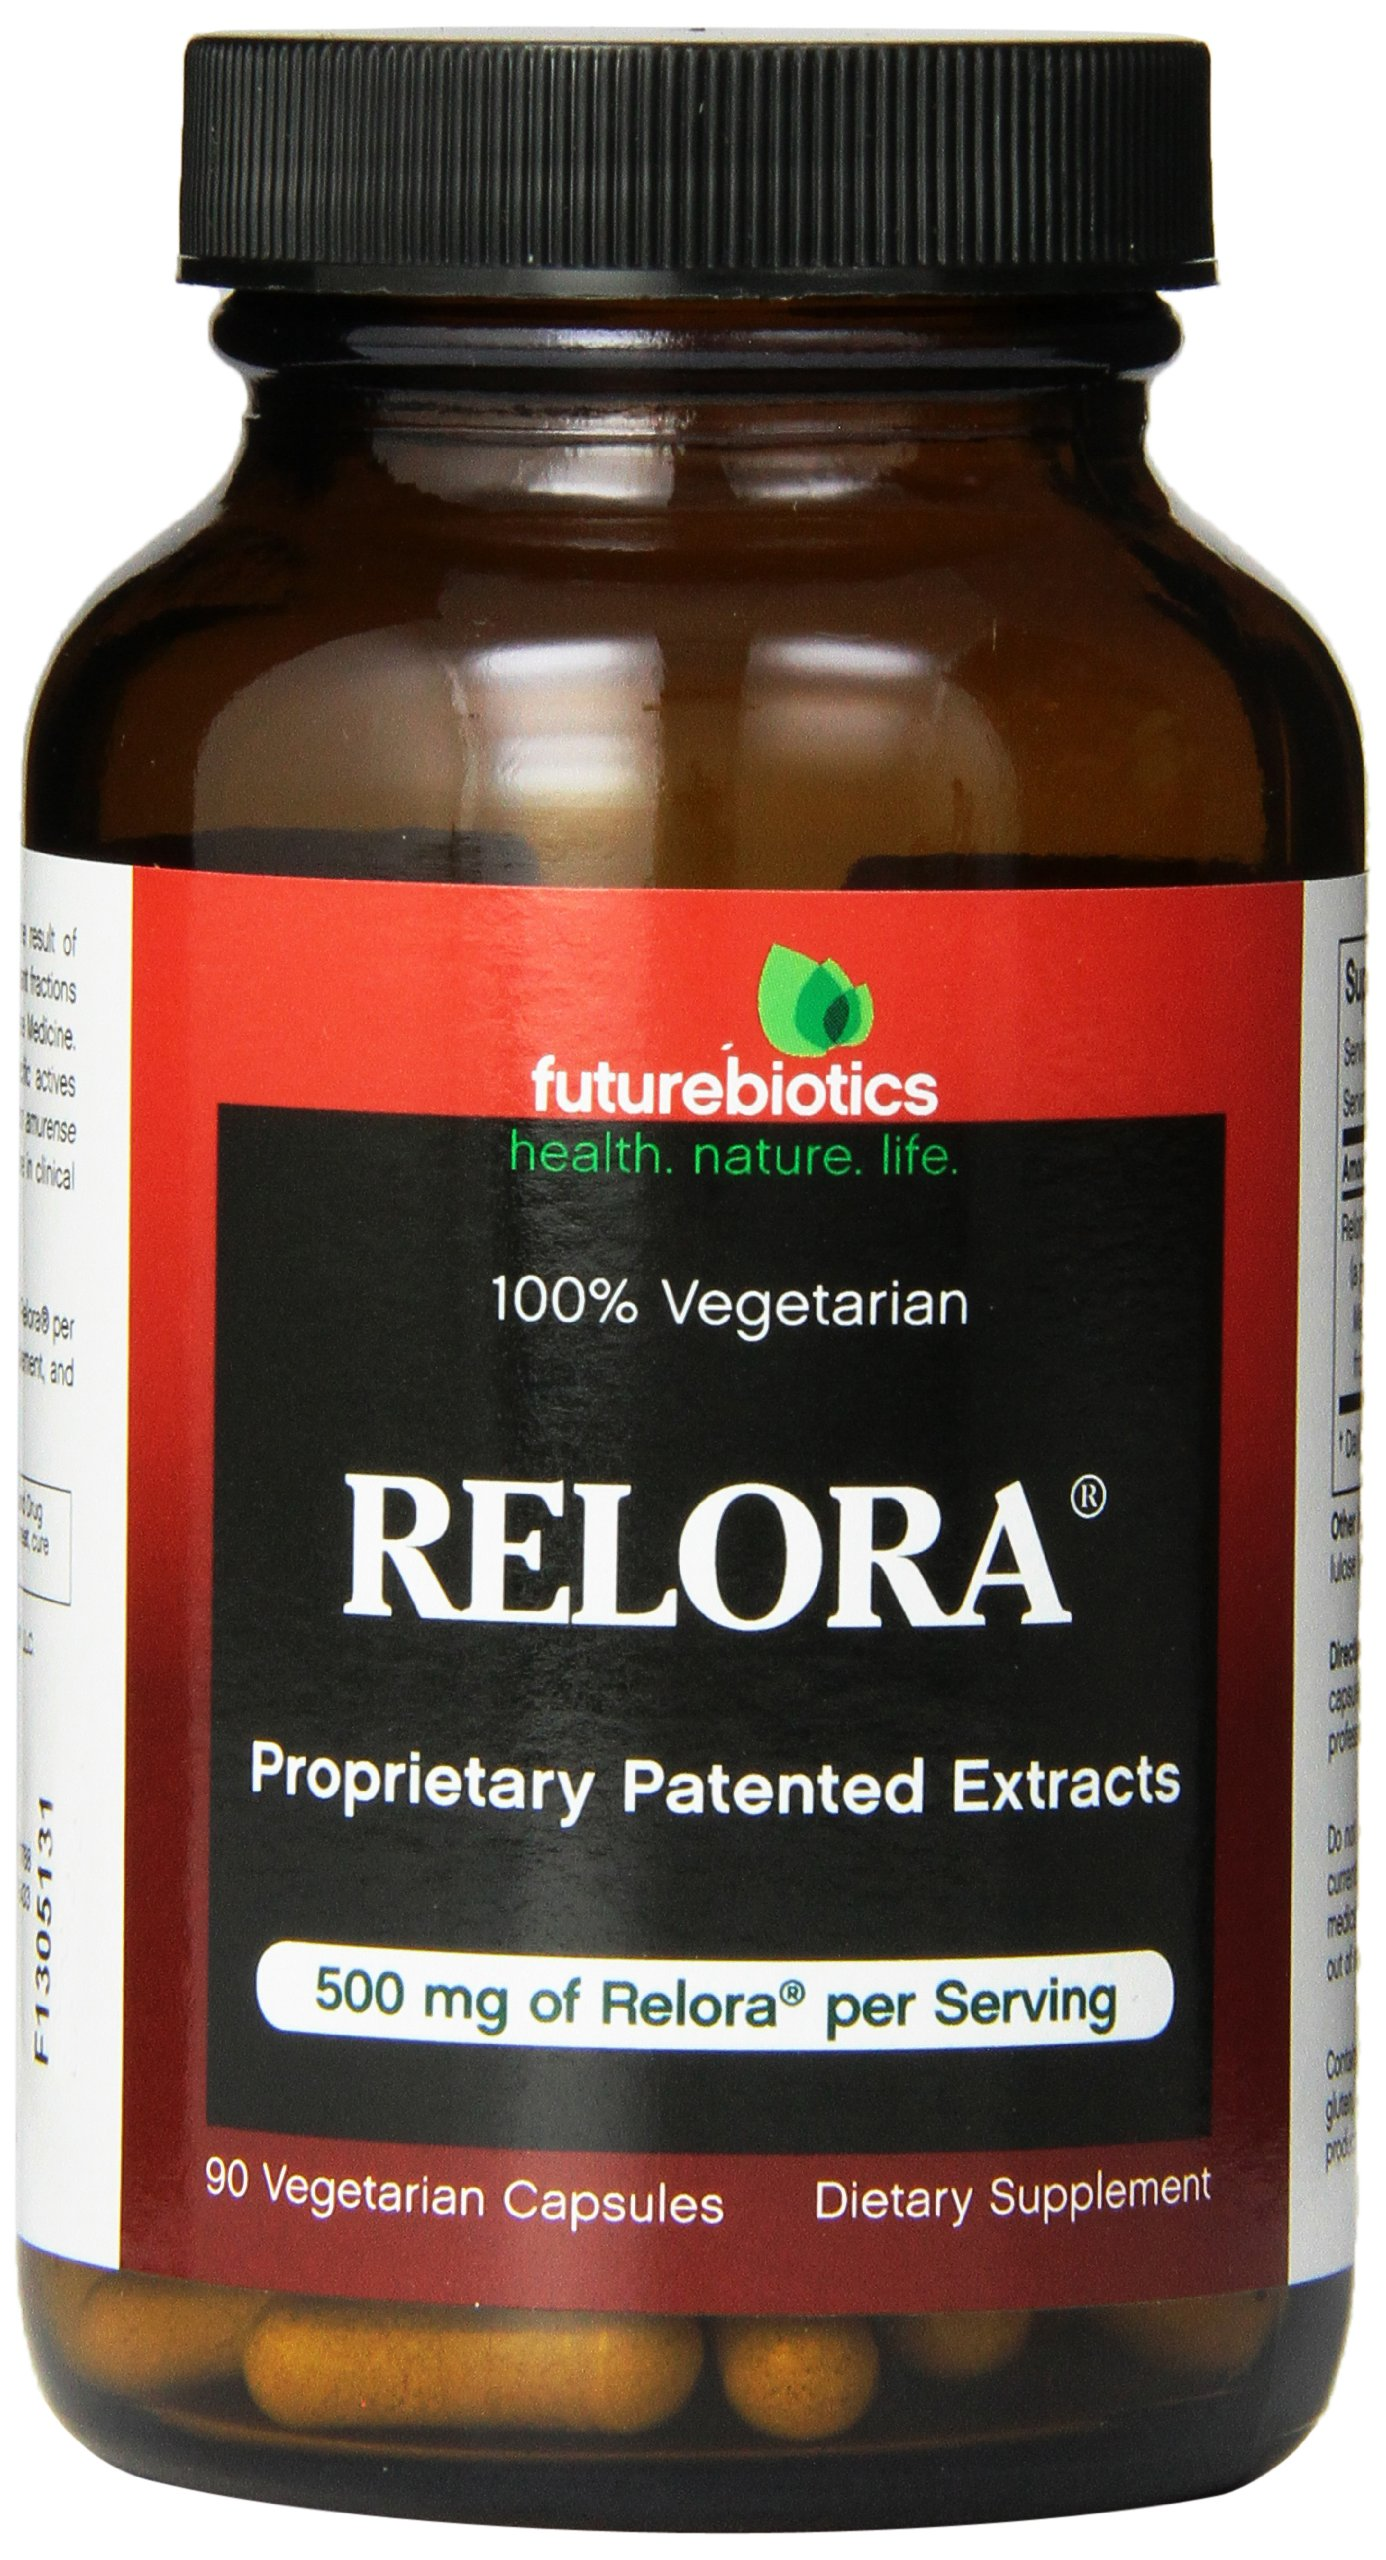 Futurebiotics Relora 500 mg, 90 Vegetarian Capsules by Futurebiotics